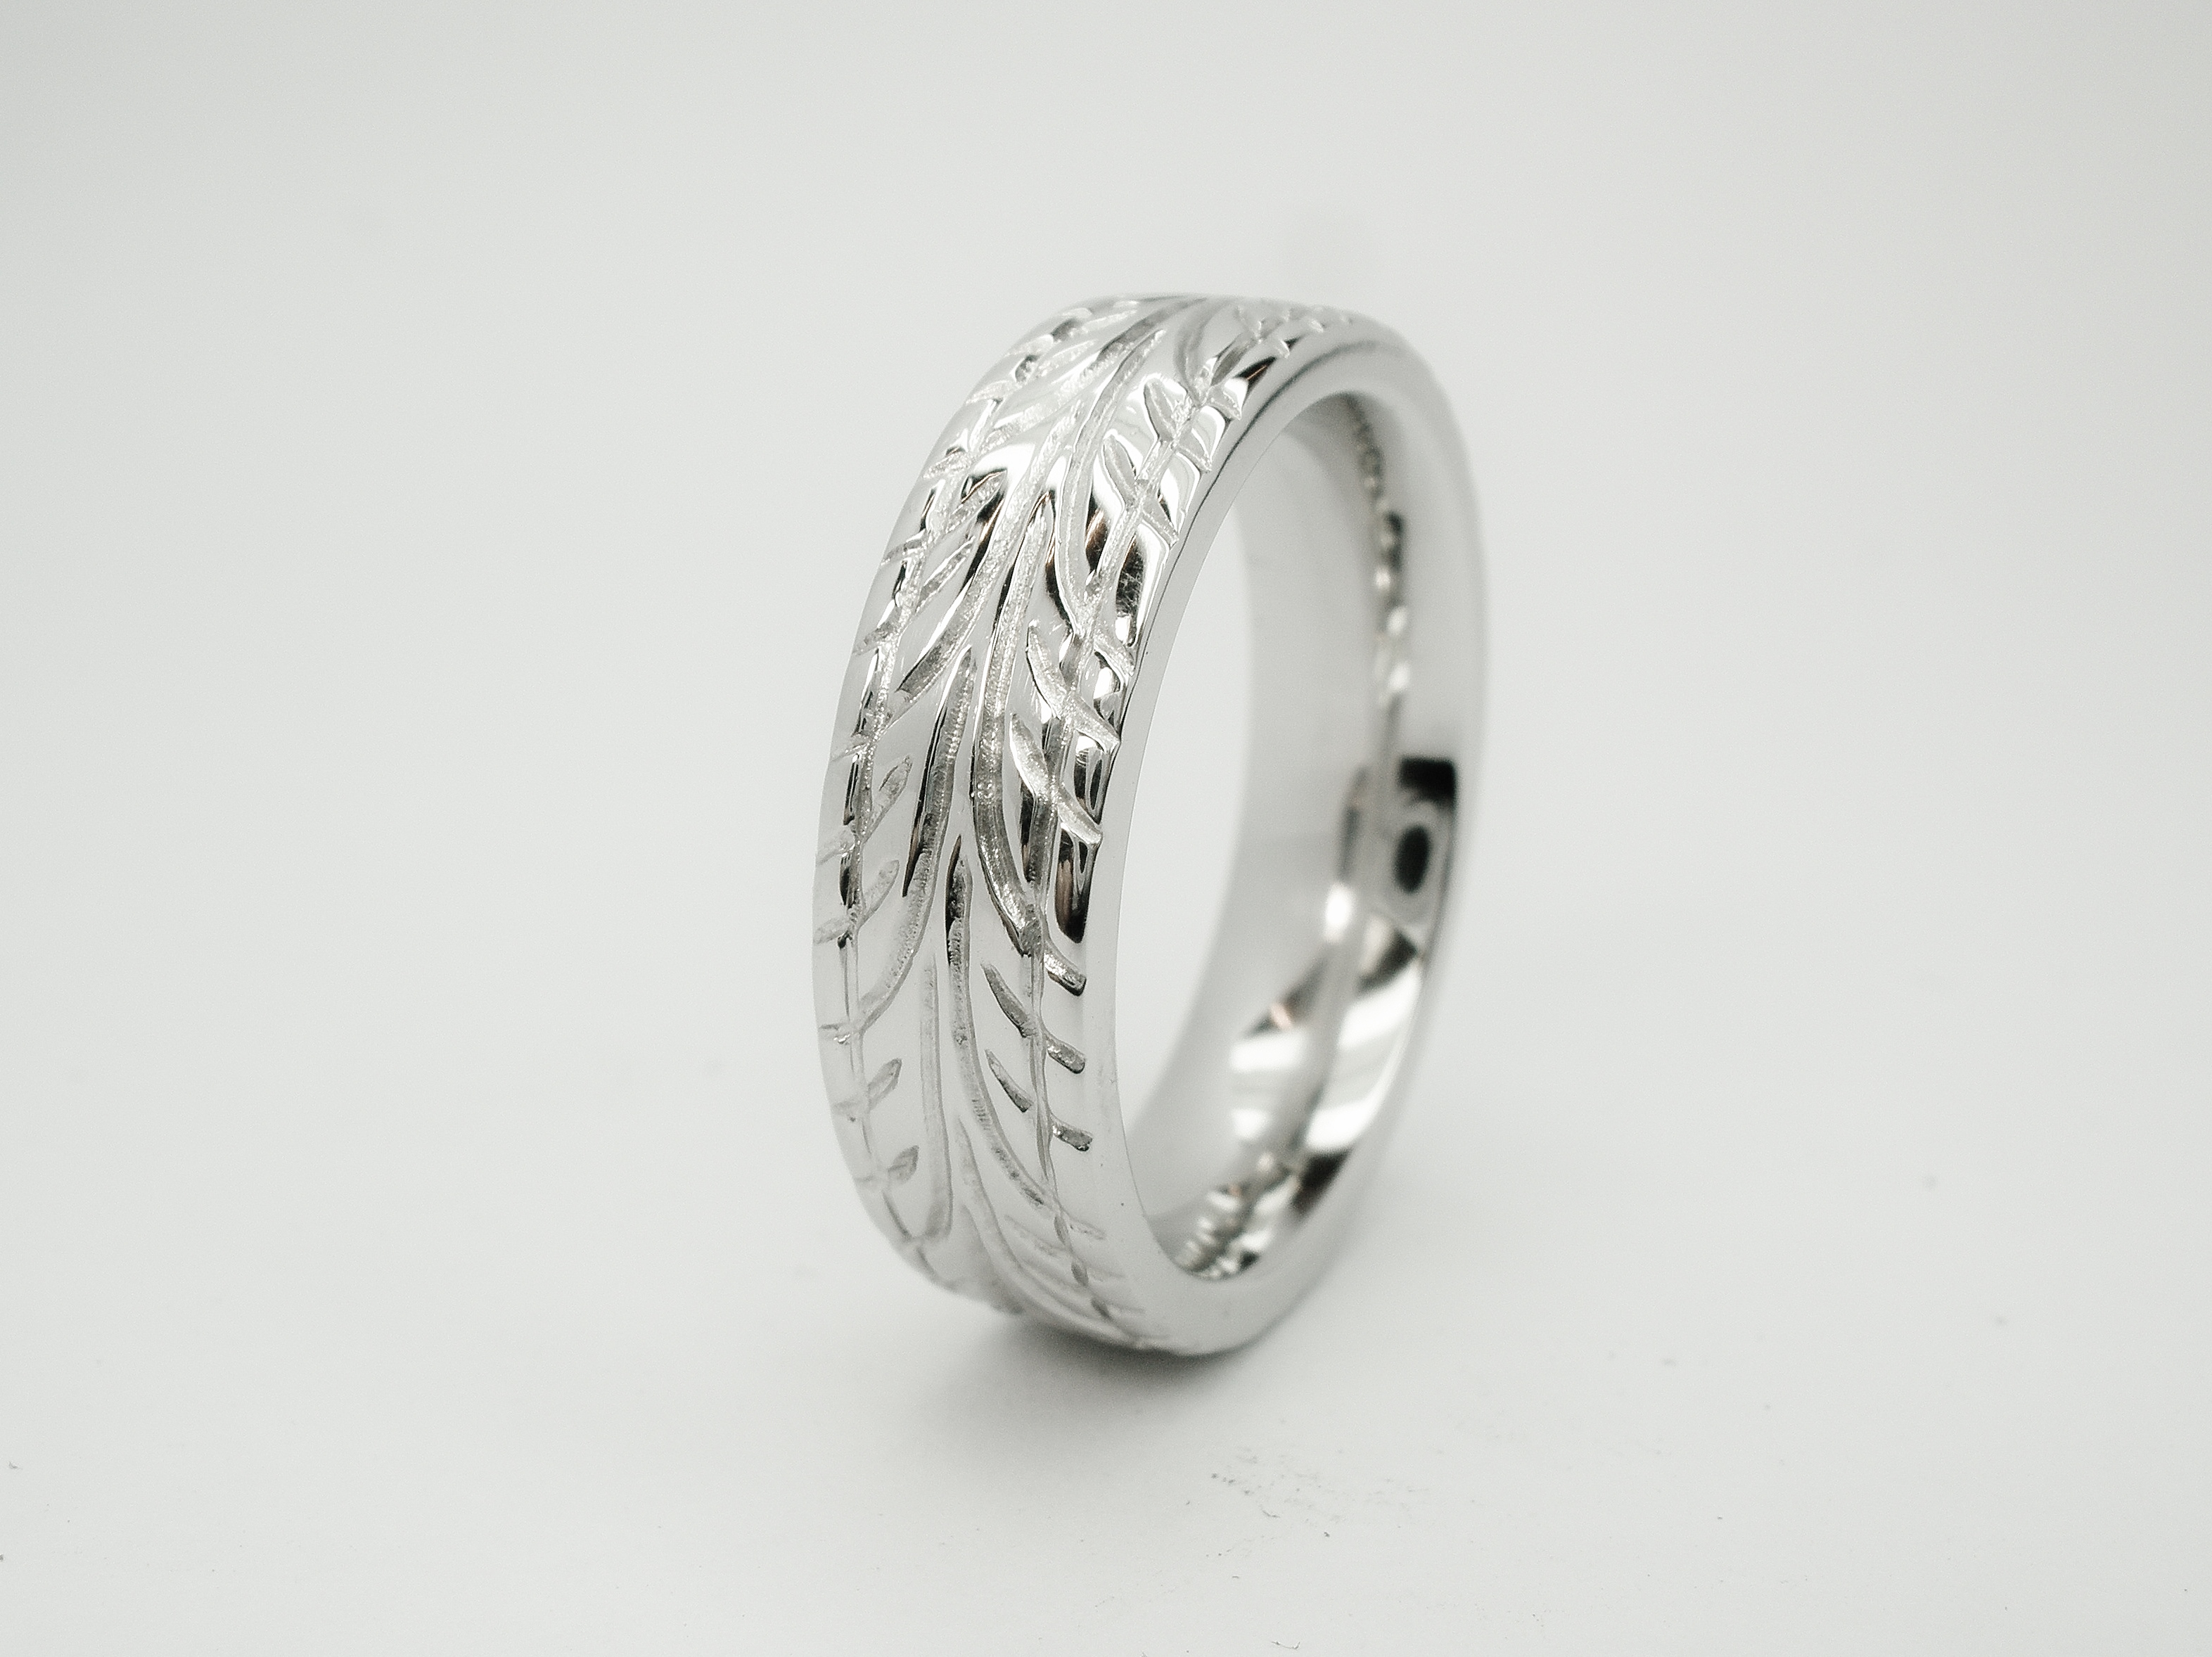 Gents platinum heavy sectioned flat court wedding ring, the cross section to mimic a low profile car tyre with a tyre tread pattern carved around.